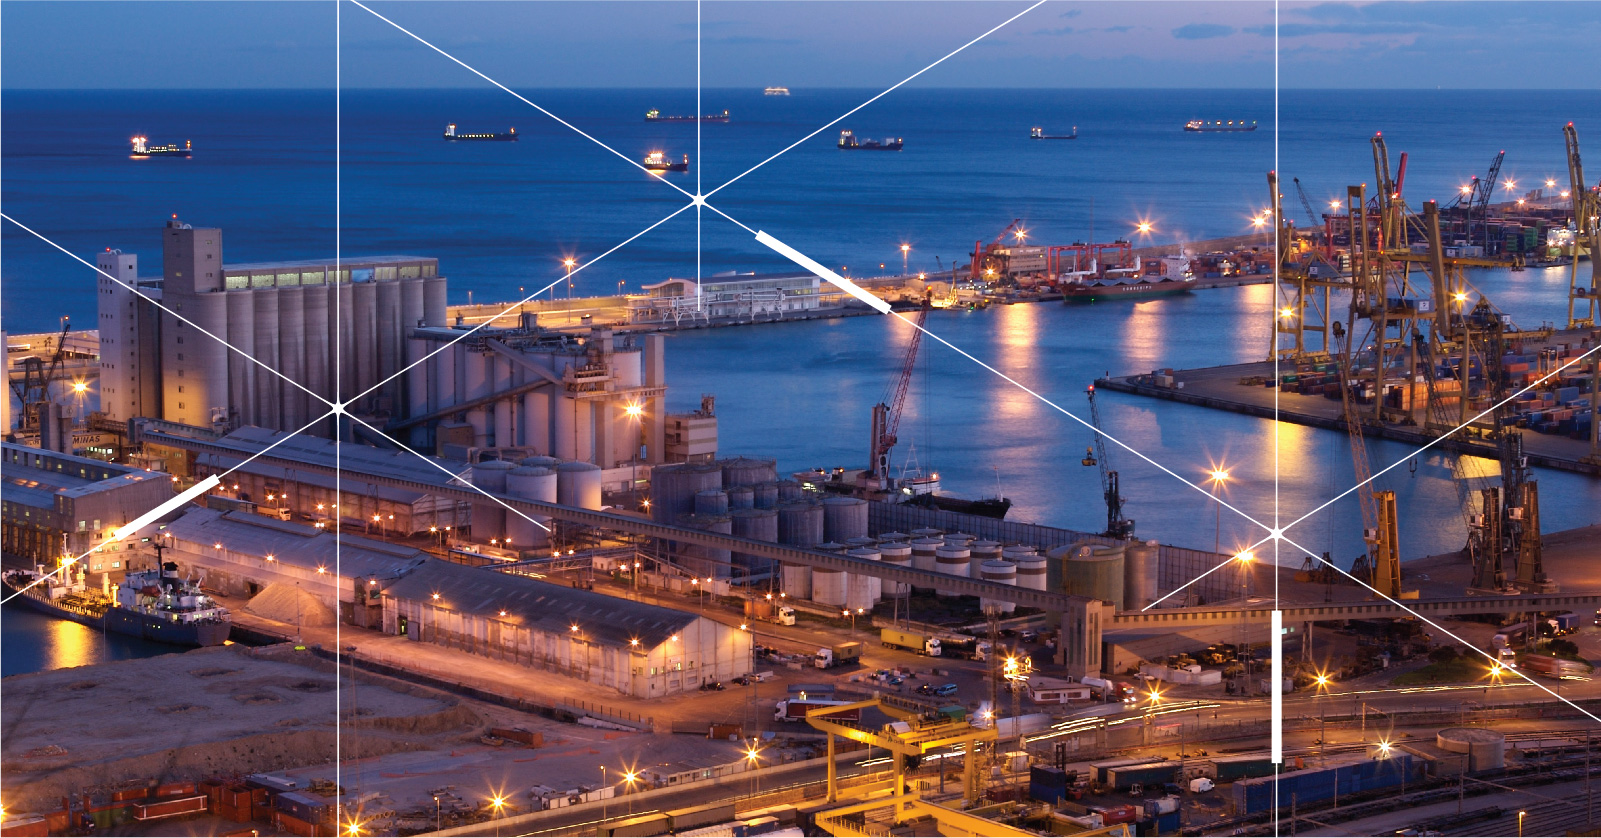 Energy efficiency goals of a Port in Oman come into being through a smart outdoor lighting solution provided by InteliLIGHT